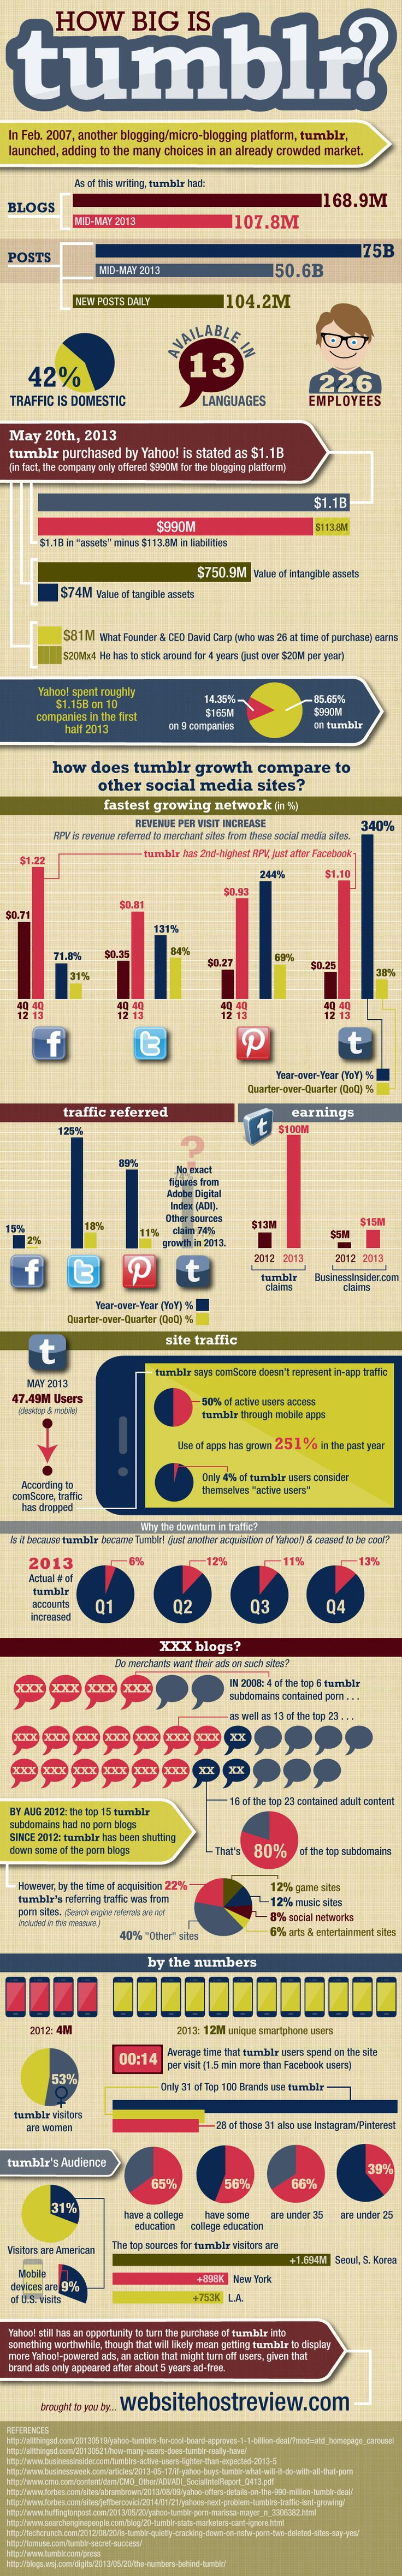 How Big is Tumblr? [Infographic]